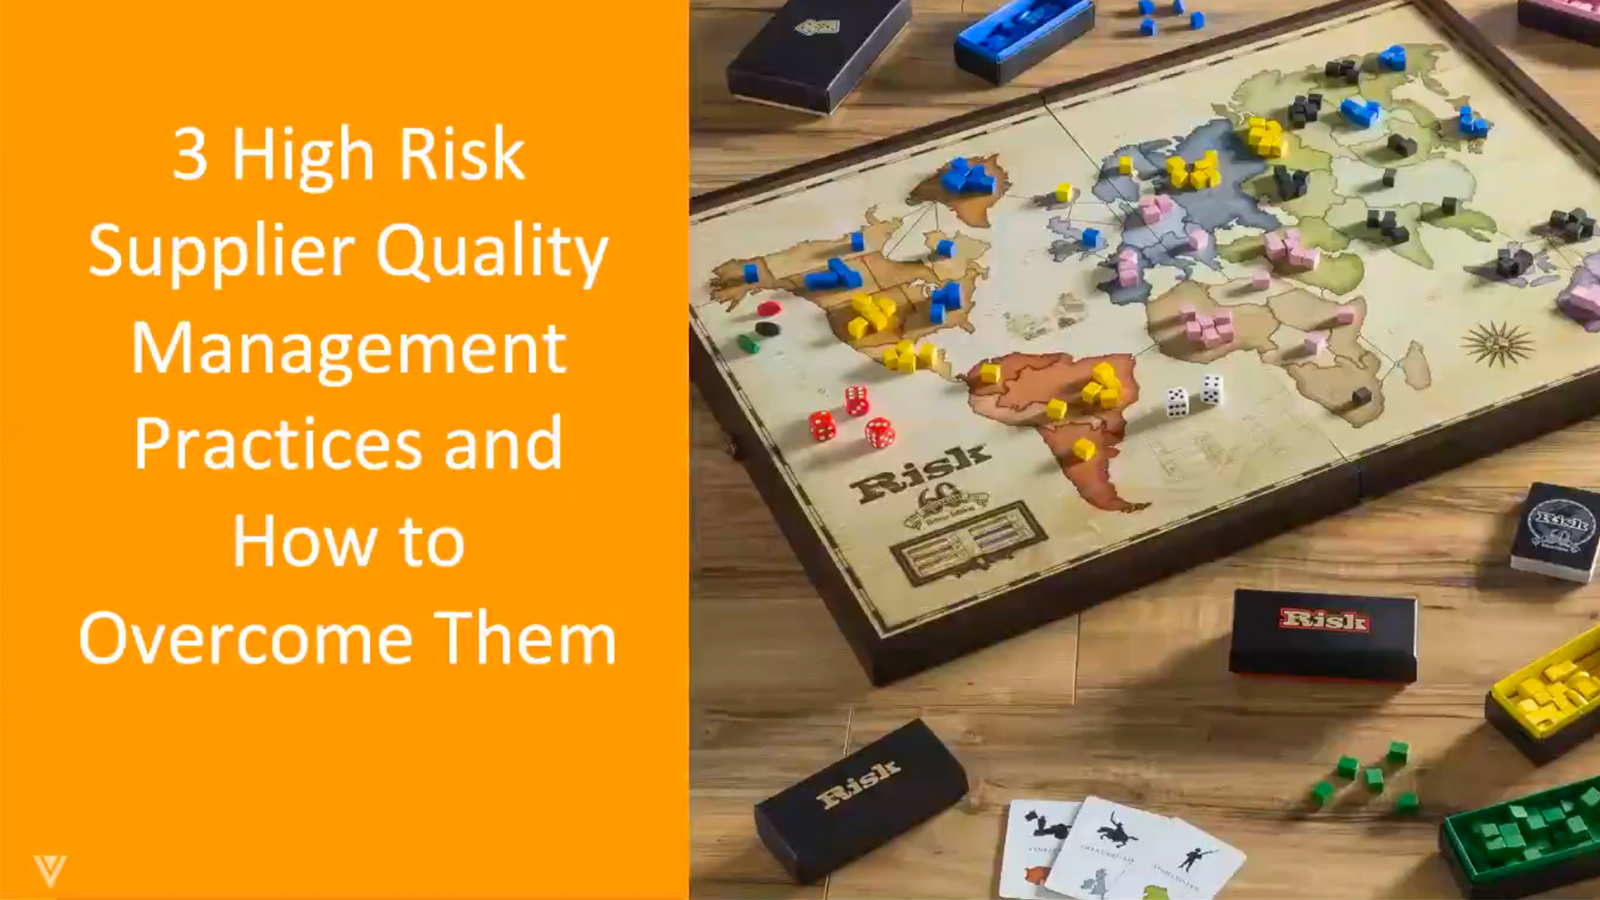 3 High Risk Supplier Quality Management Practices and How to Overcome Them